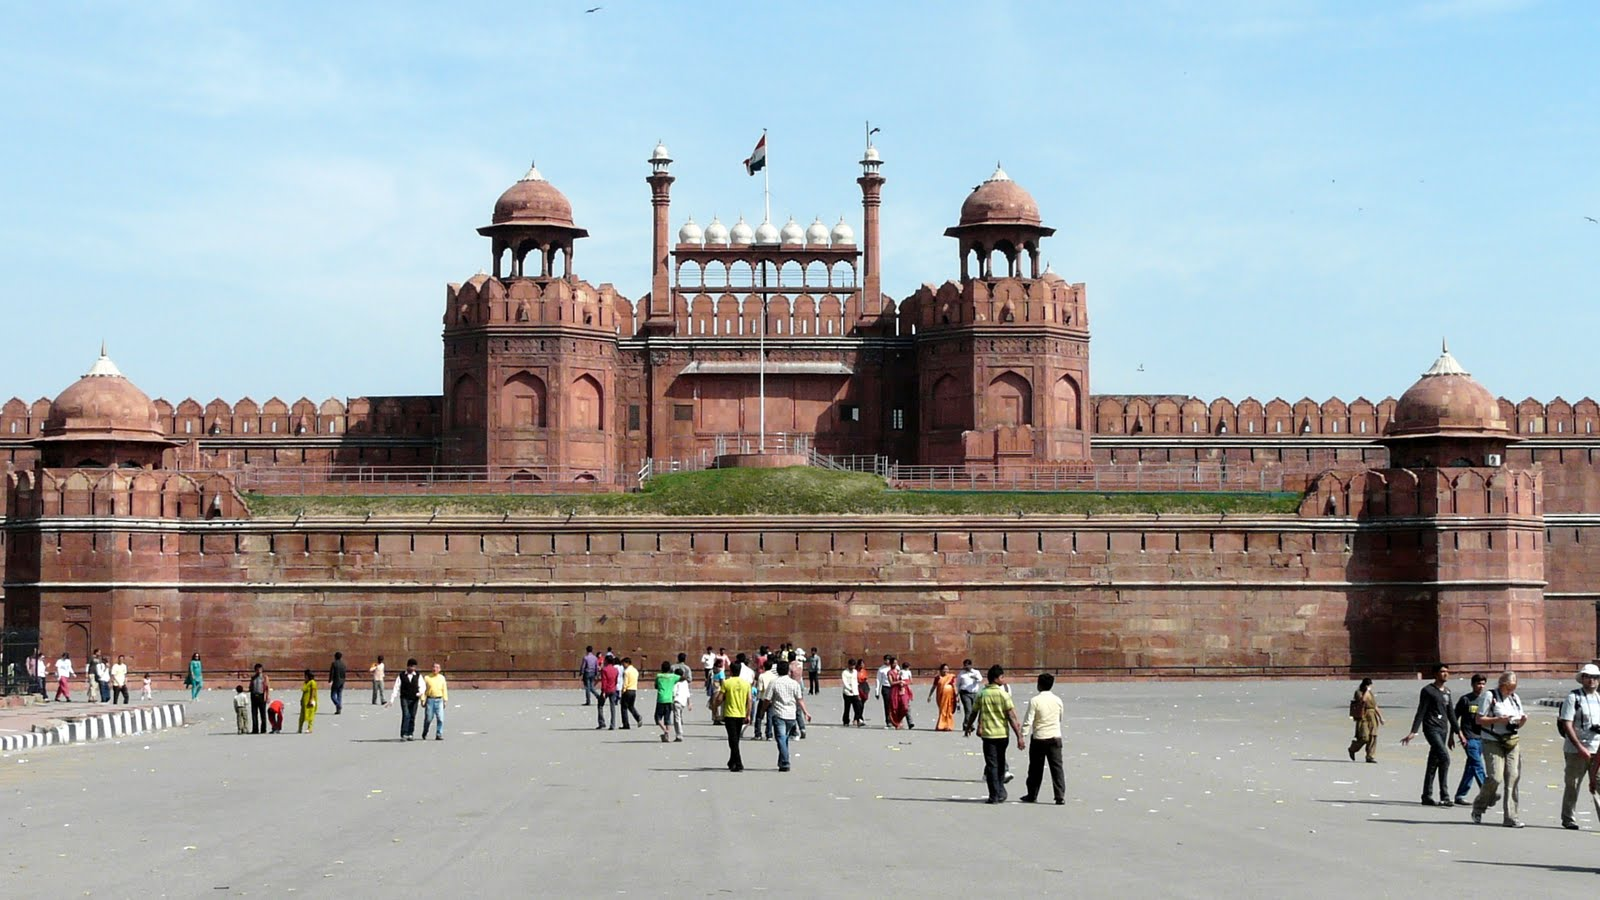 red fort Book your tickets online for red fort (lal quila), new delhi: see 4,588 reviews, articles, and 3,562 photos of red fort (lal quila), ranked no59 on tripadvisor among 446 attractions in new delhi.